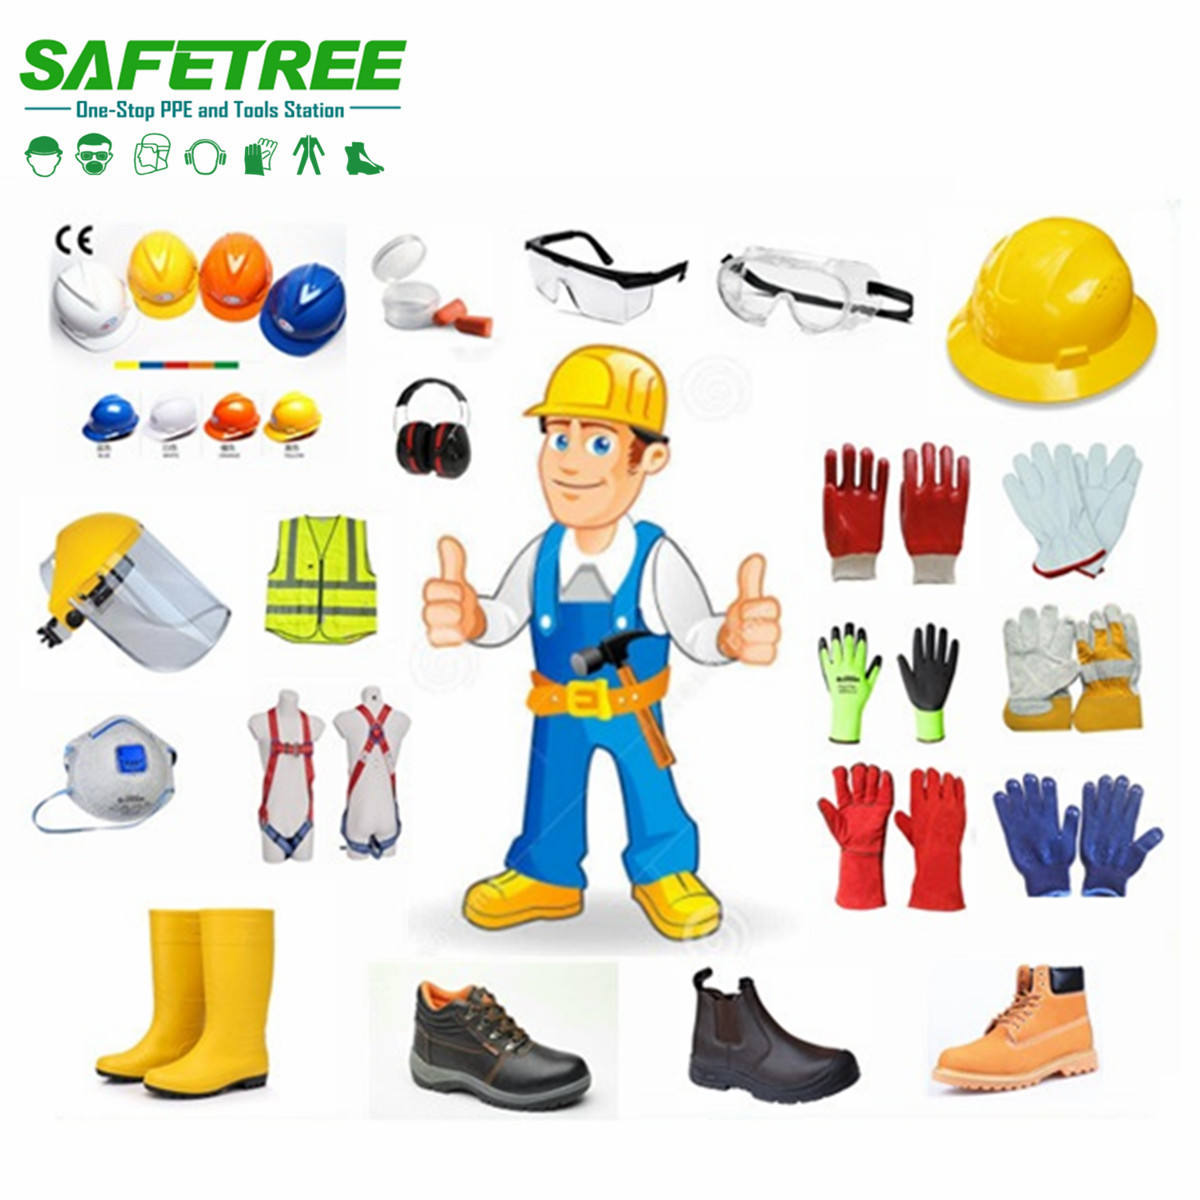 Safetree PPE industrial / construction safety equipment